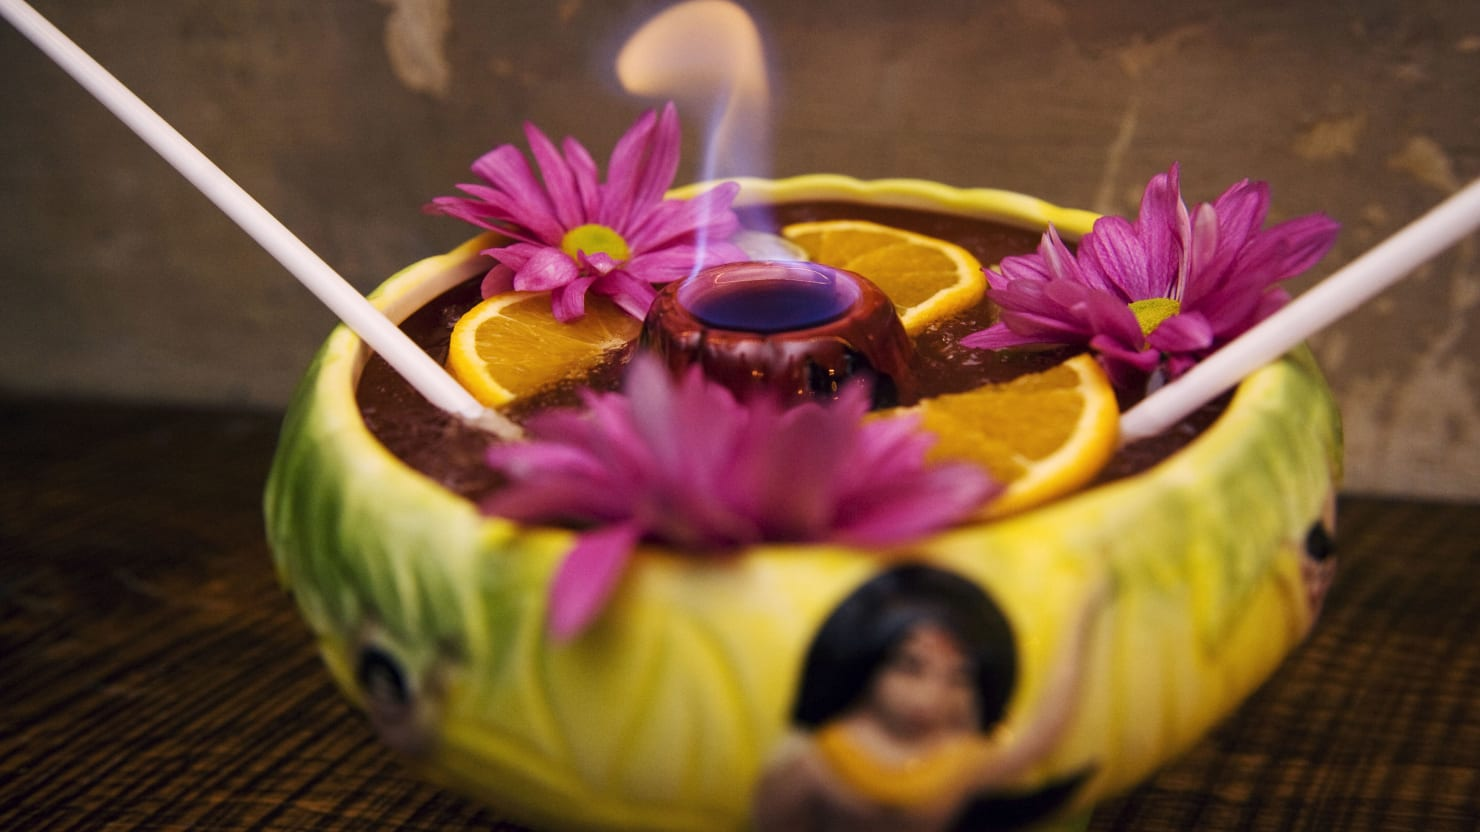 The Mysterious Origins of Tiki Classic the Scorpion Bowl